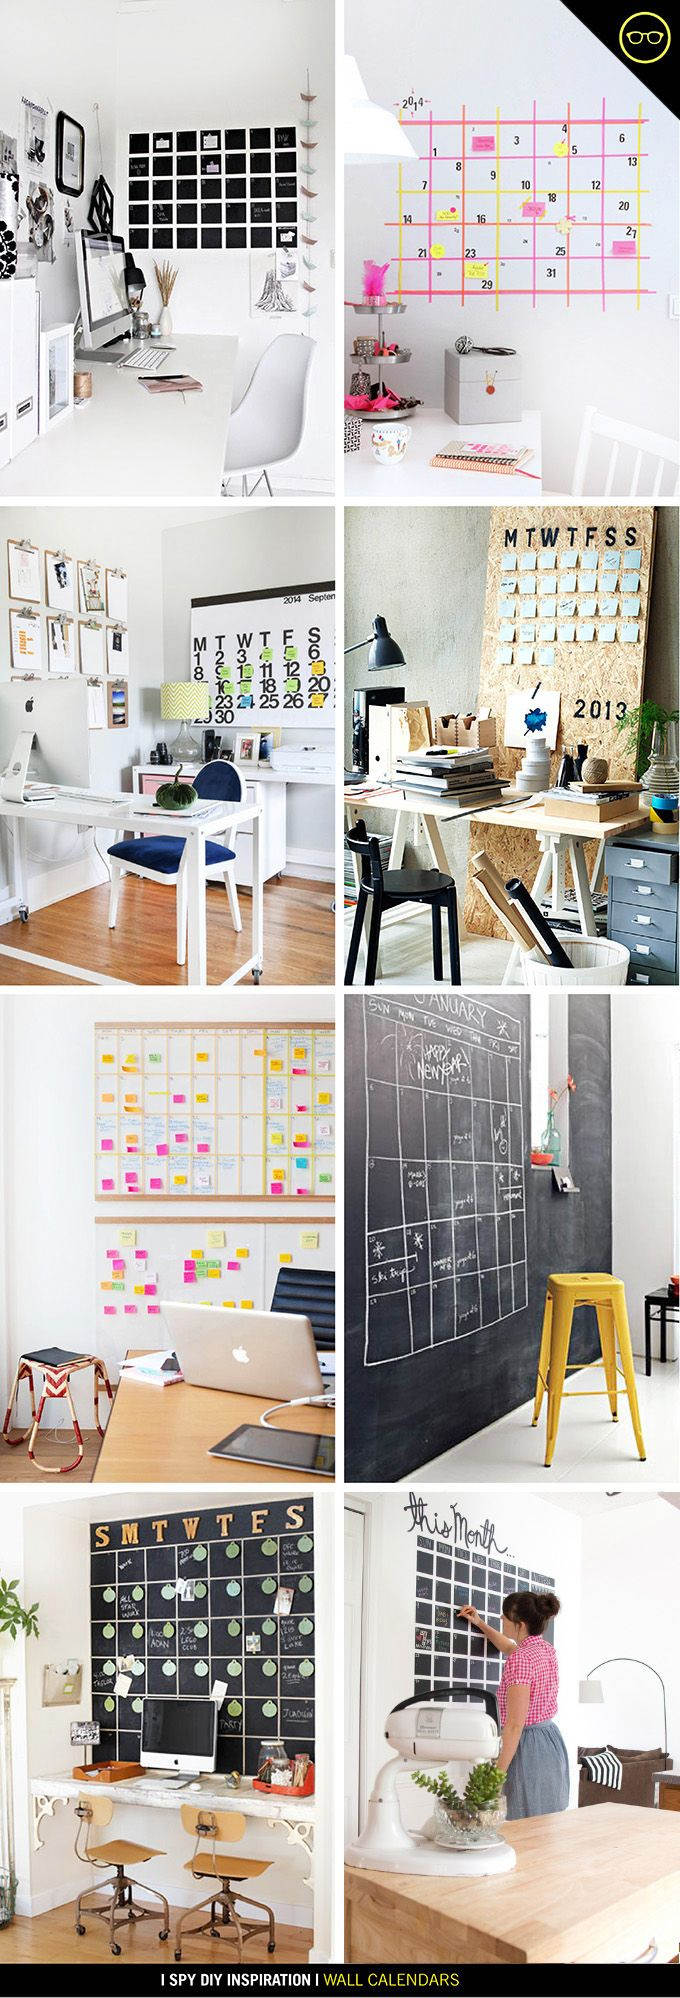 Best Calendar Organization : The best wall calendars ideas on pinterest home